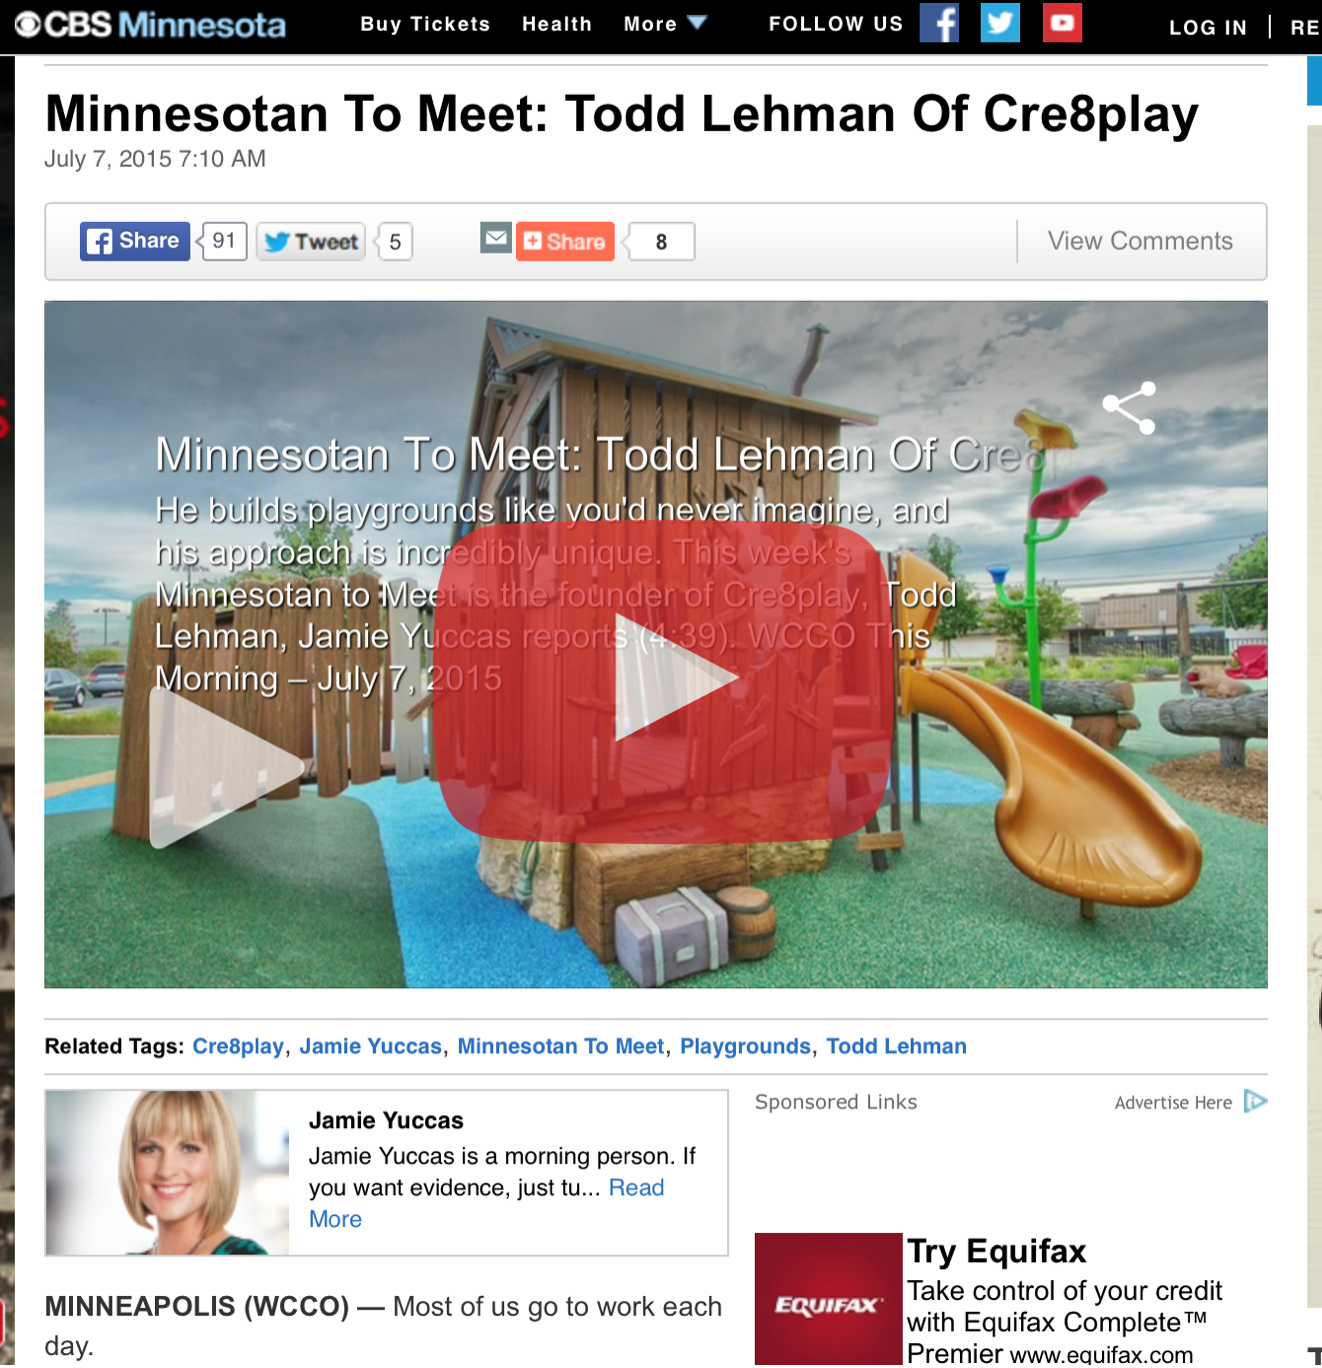 Minnesotan to Meet: Todd Lehman Cre8Play